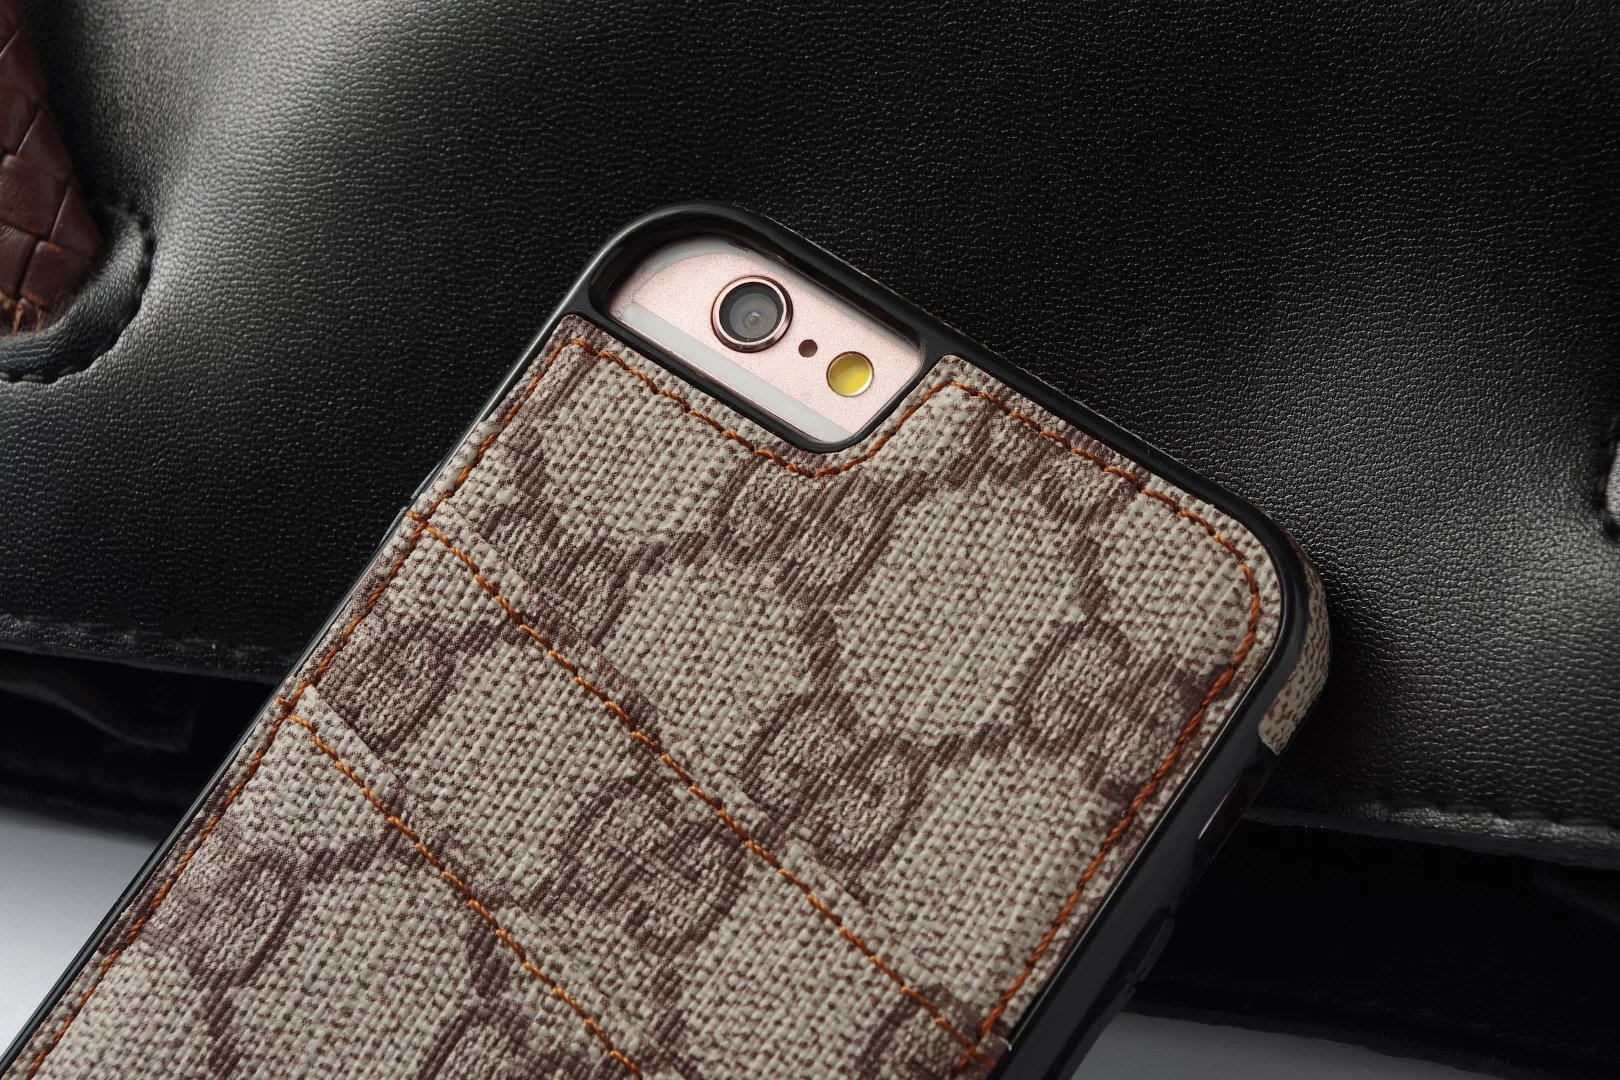 cover para iphone 6 shop iphone 6 cases fashion iphone6 case designer iphone 6 cases websites for cell phone cases iphone 6 date premium leather phone cases case of iphone 6 custom case for iphone